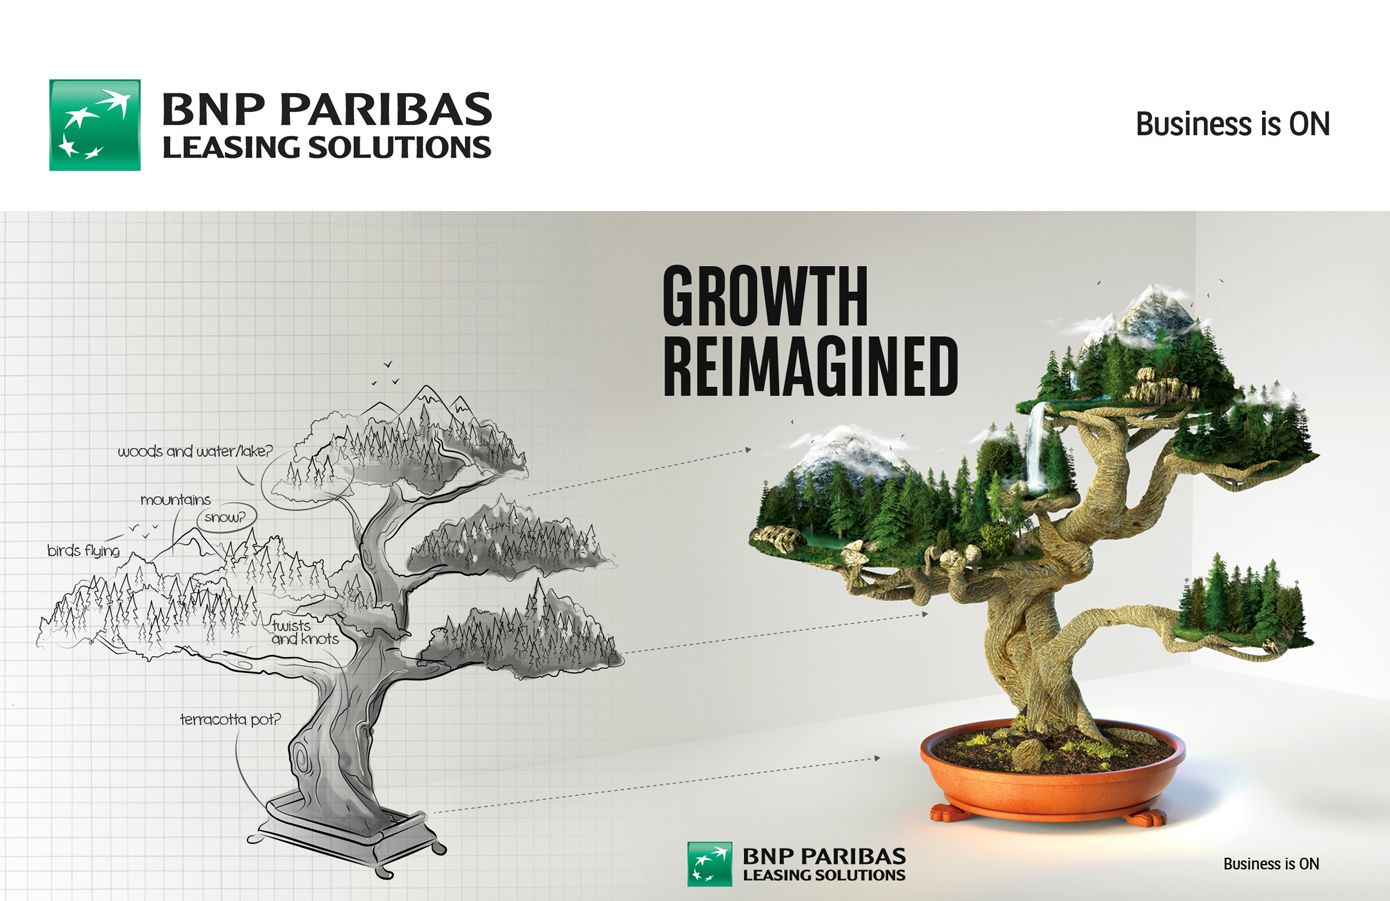 BNP Paripas - Growth